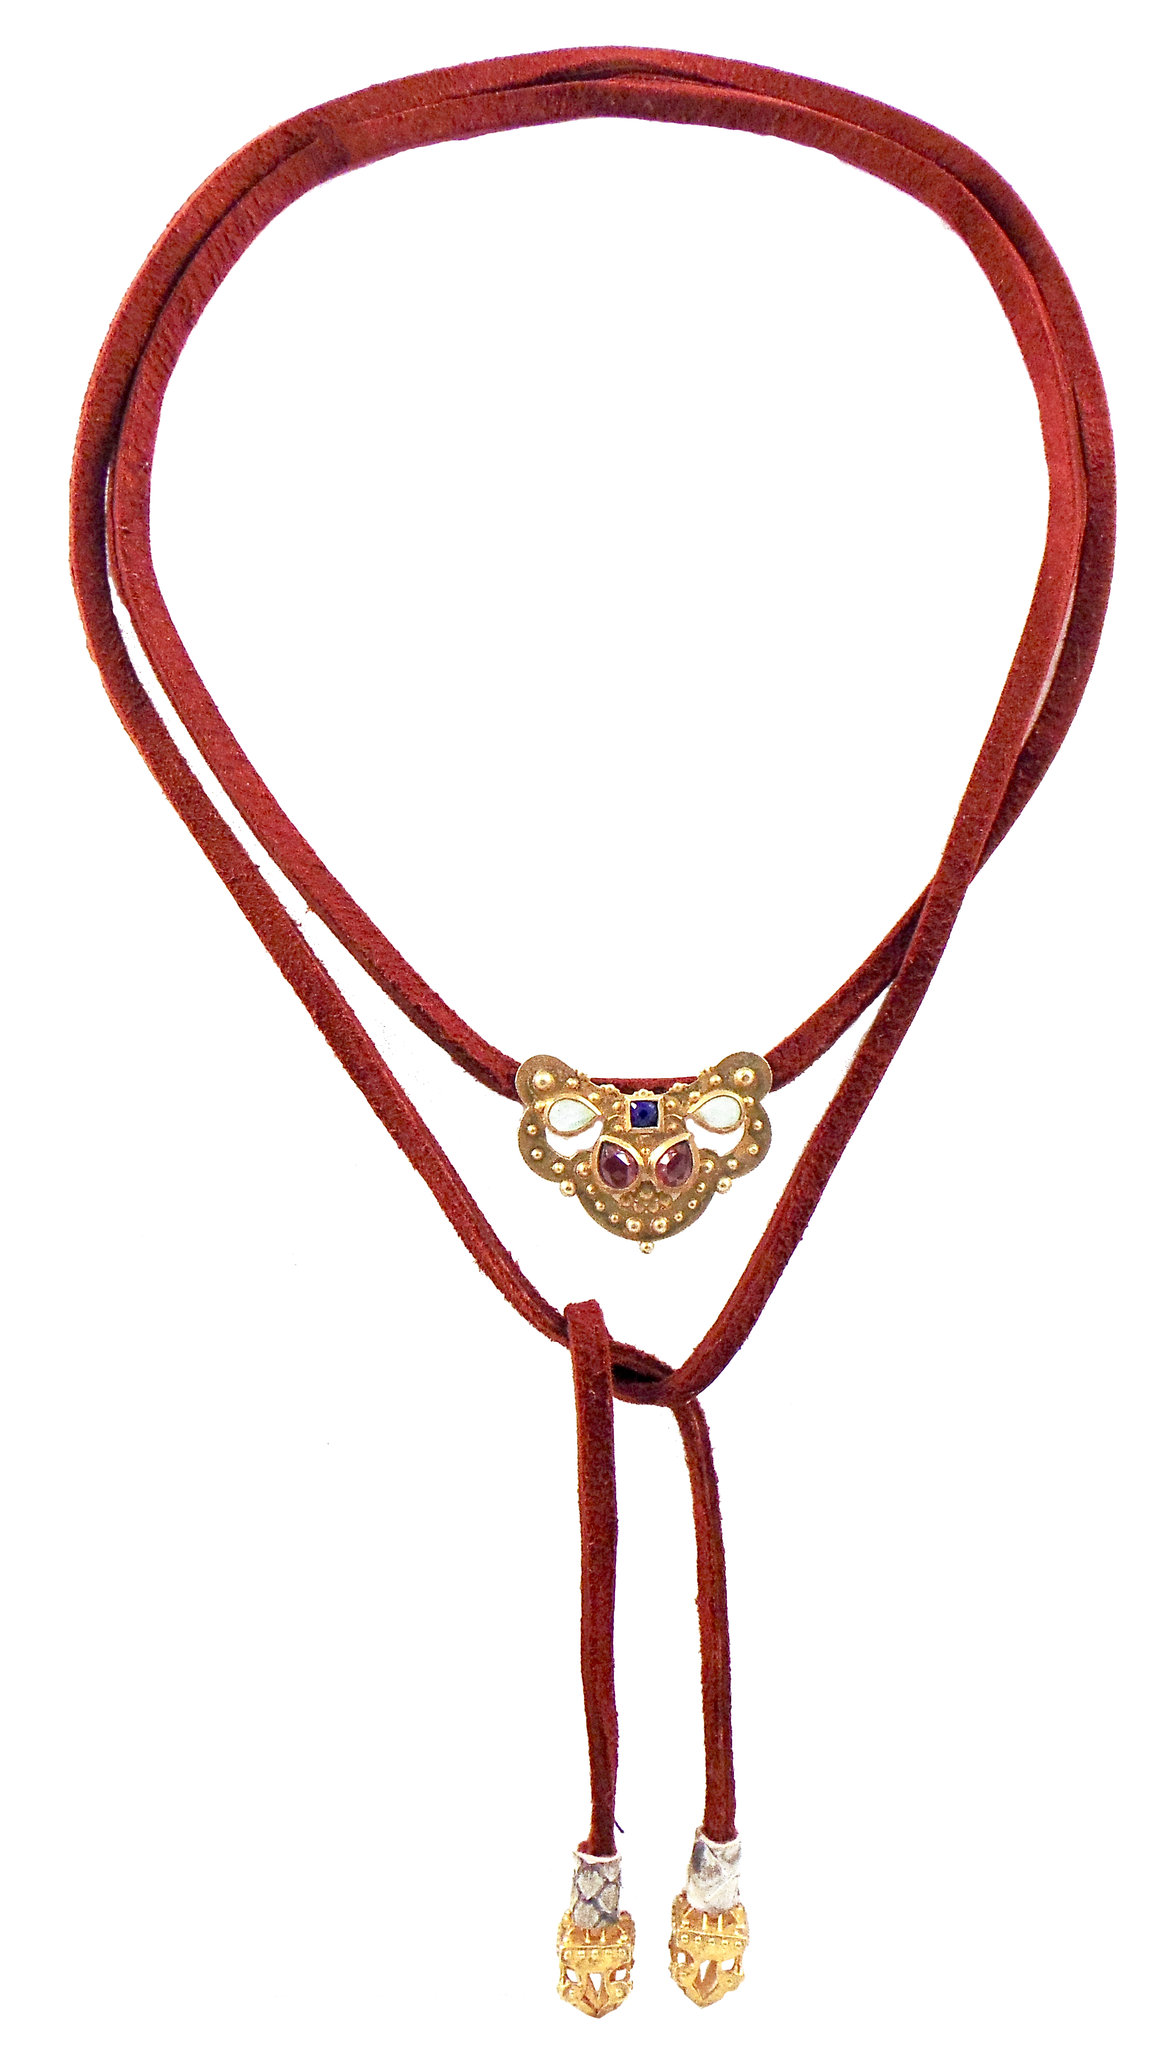 Rosa Laureate Necklace